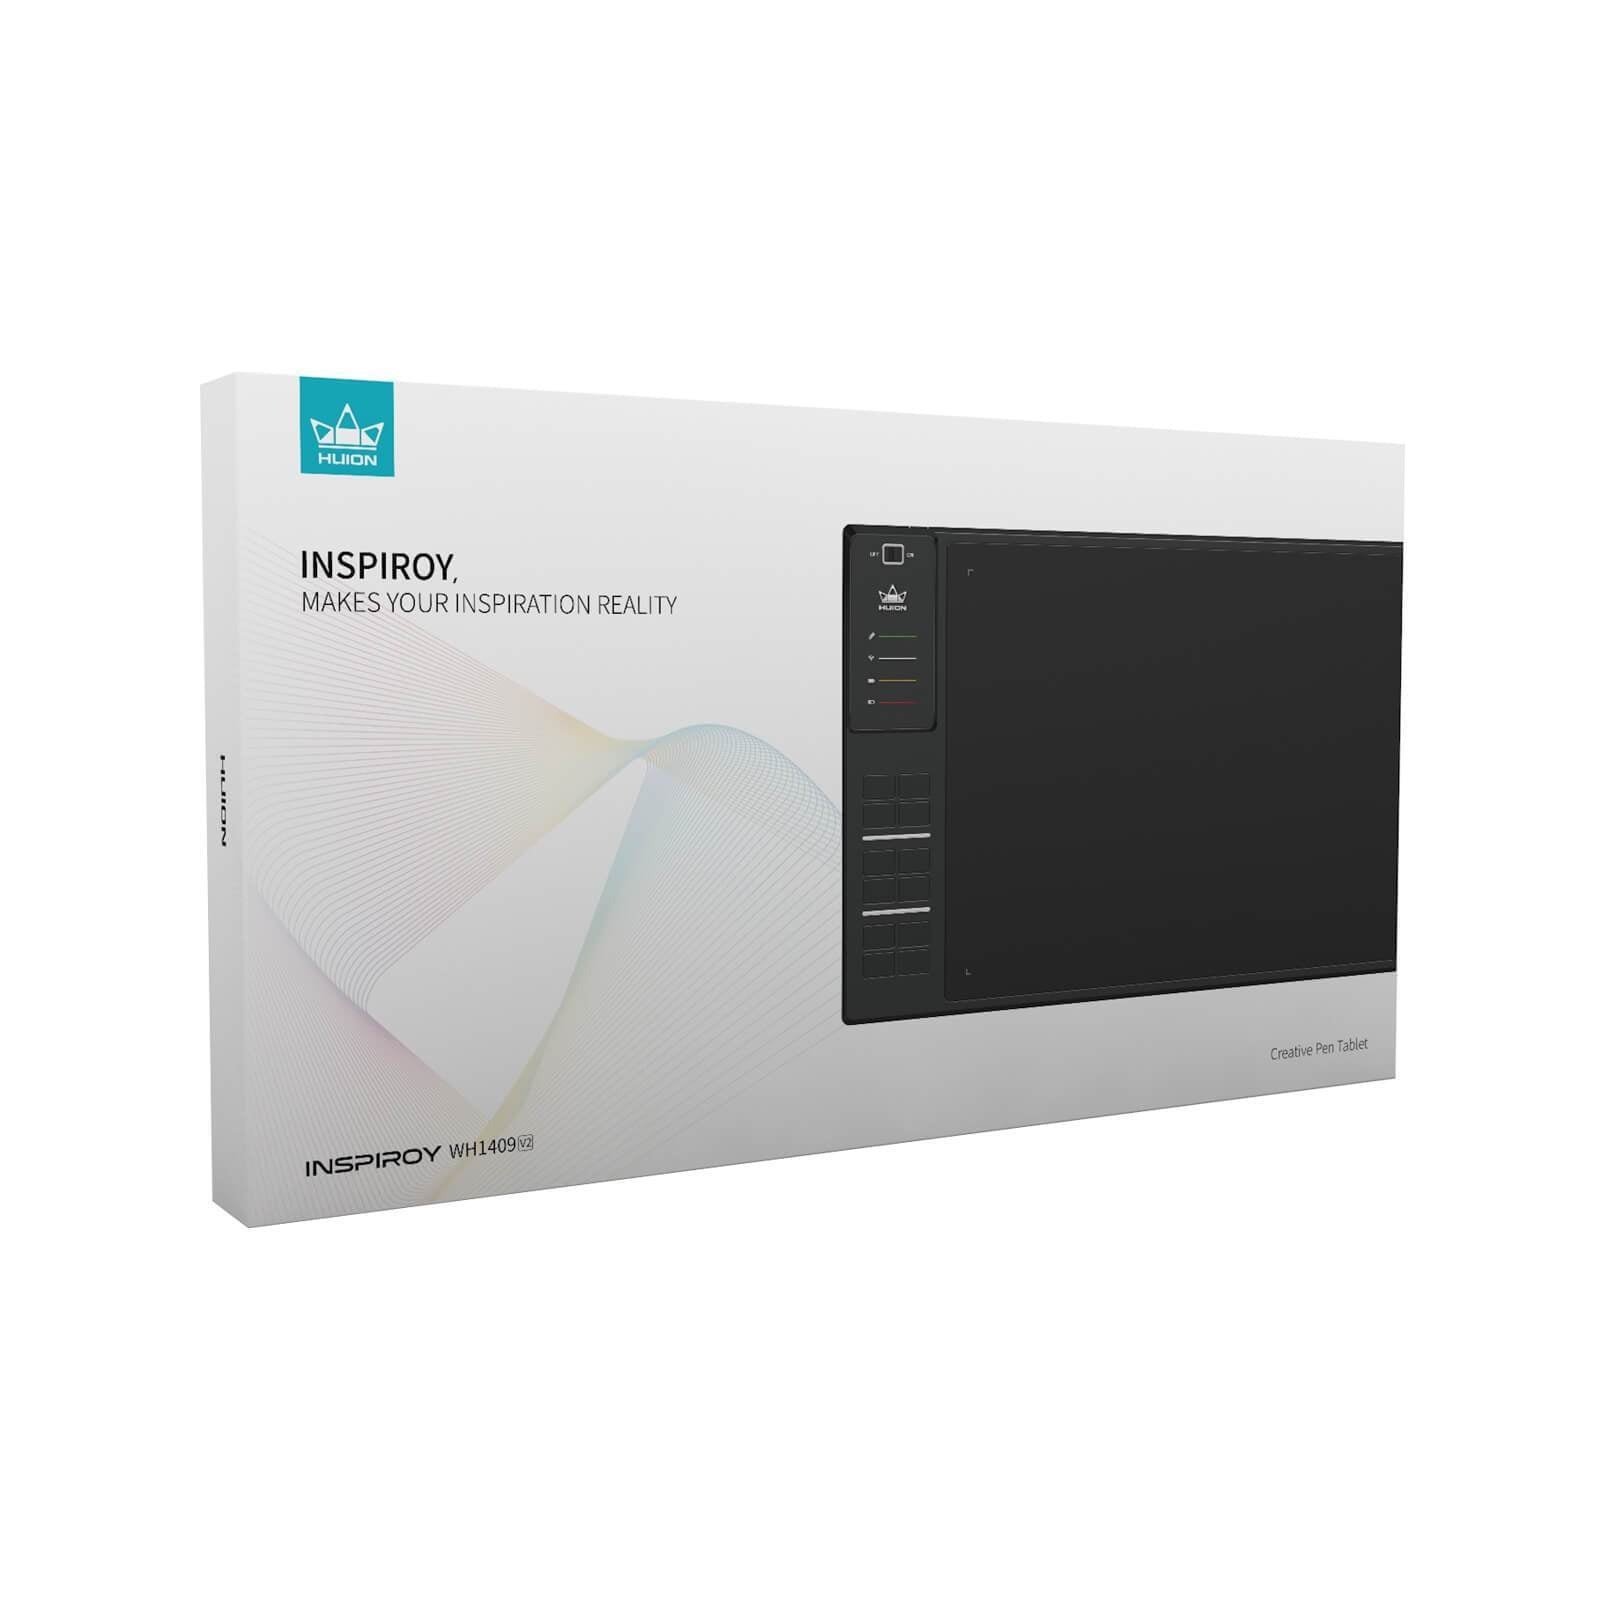 Huion Inspiroy WH1409 V2